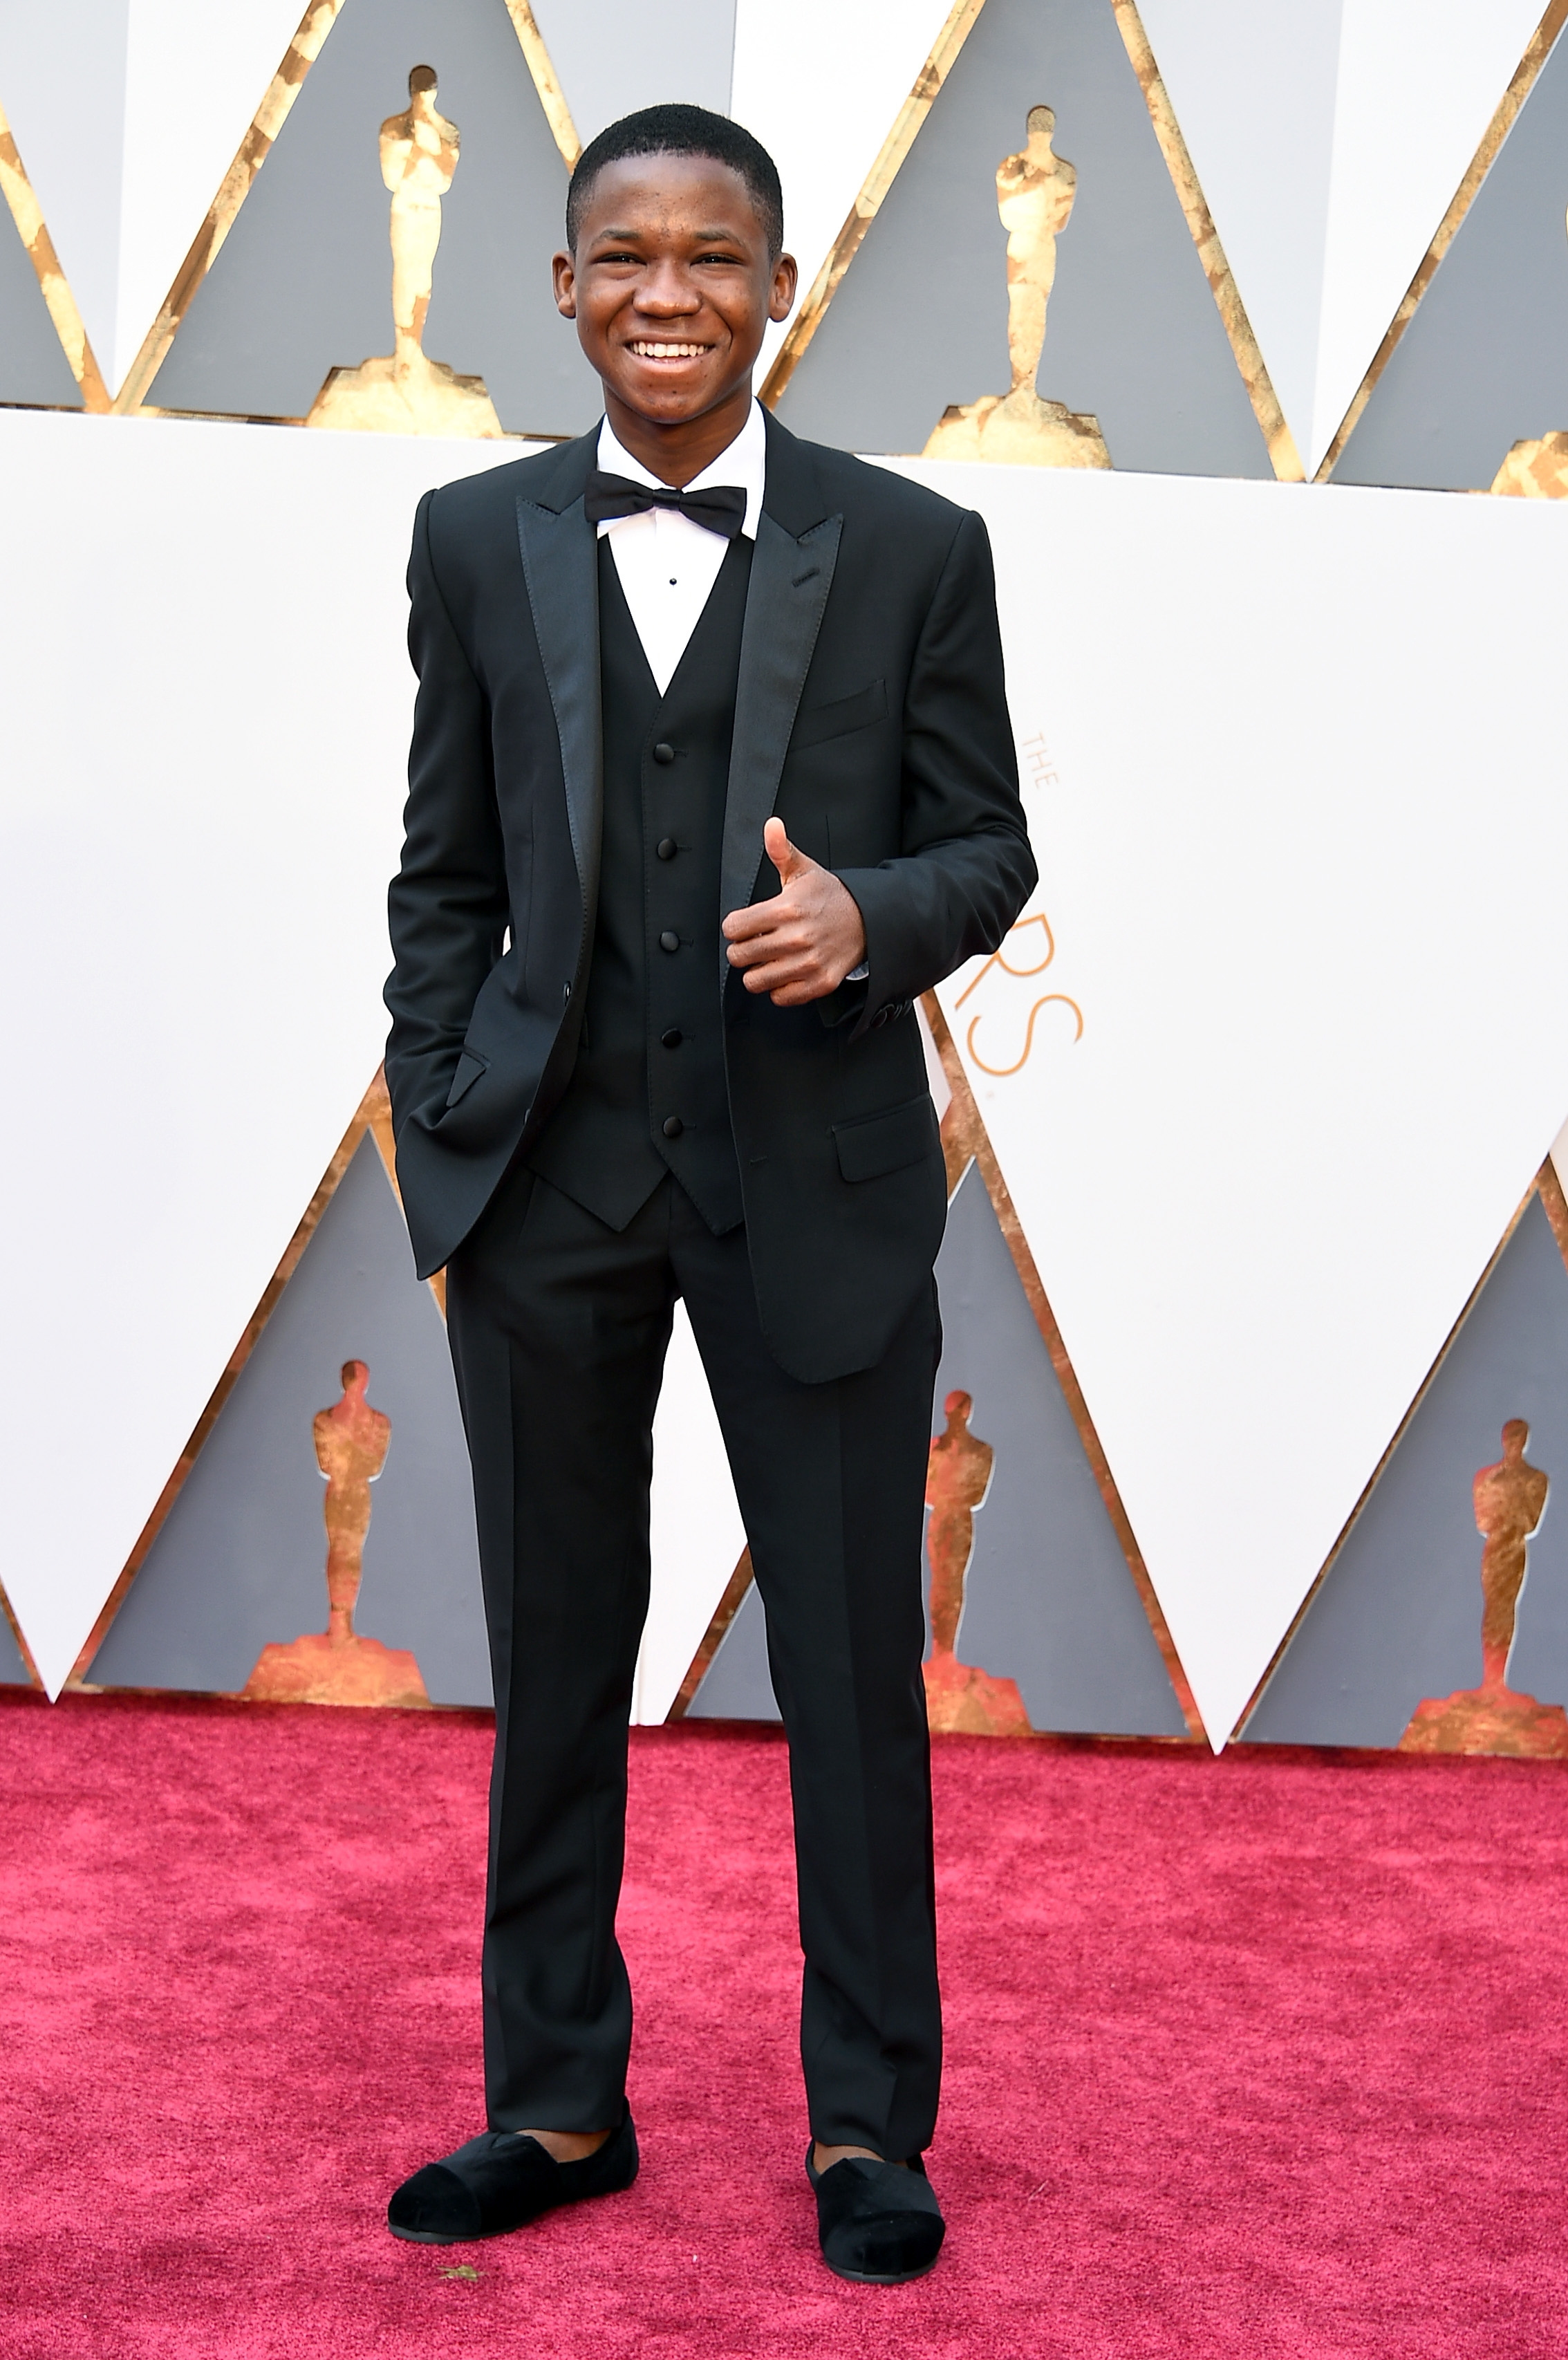 Abraham Attah attends the 88th Annual Academy Awards on Feb. 28, 2016 in Hollywood, Calif.